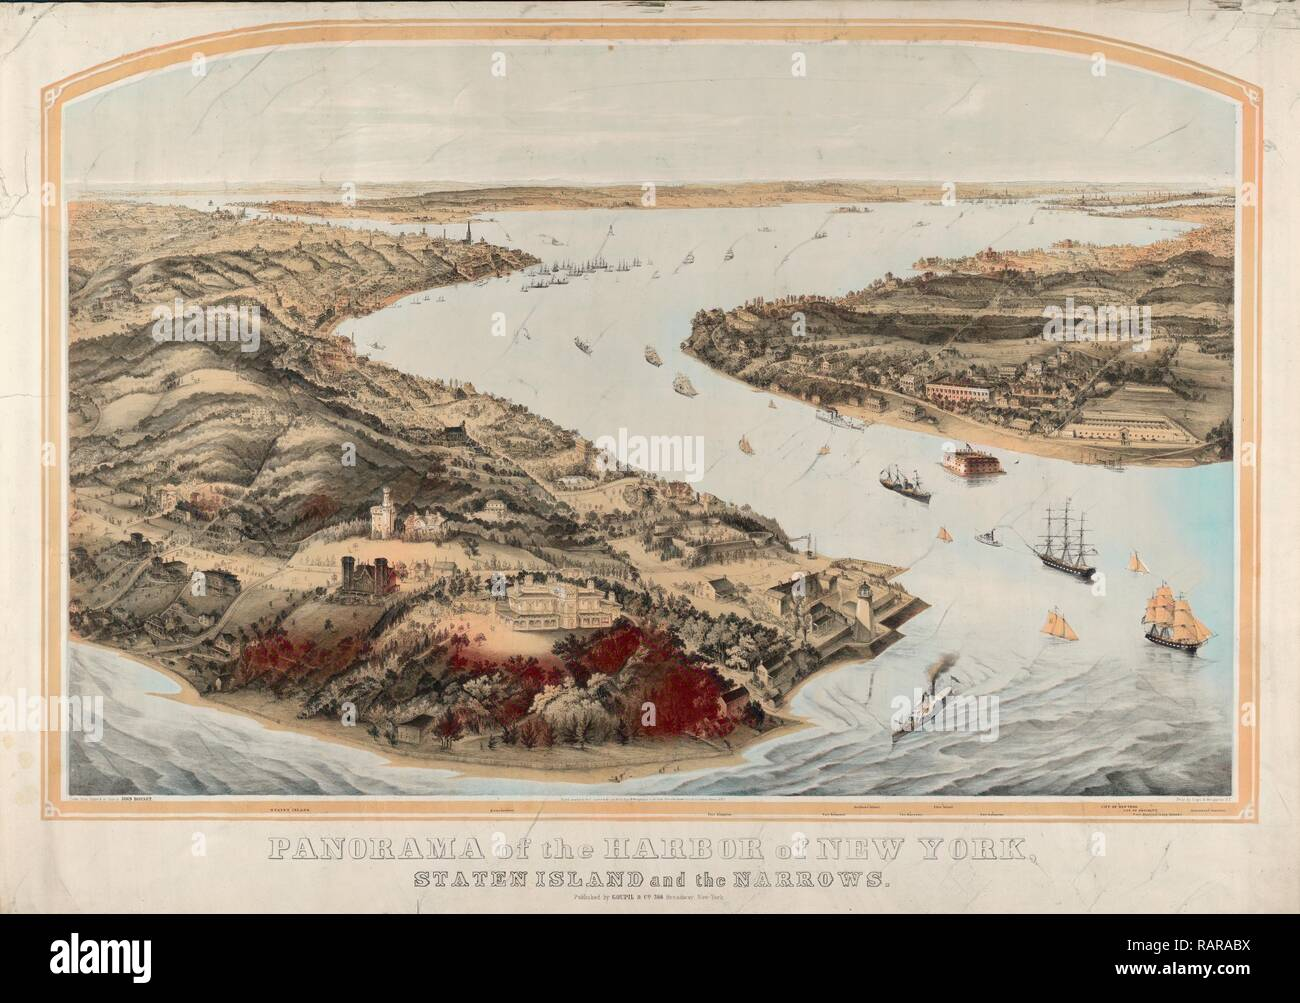 Panorama of the harbor of New York, Staten Island and the narrows, Nagel & Weingärtner, printmaker, New York: Goupil reimagined - Stock Image